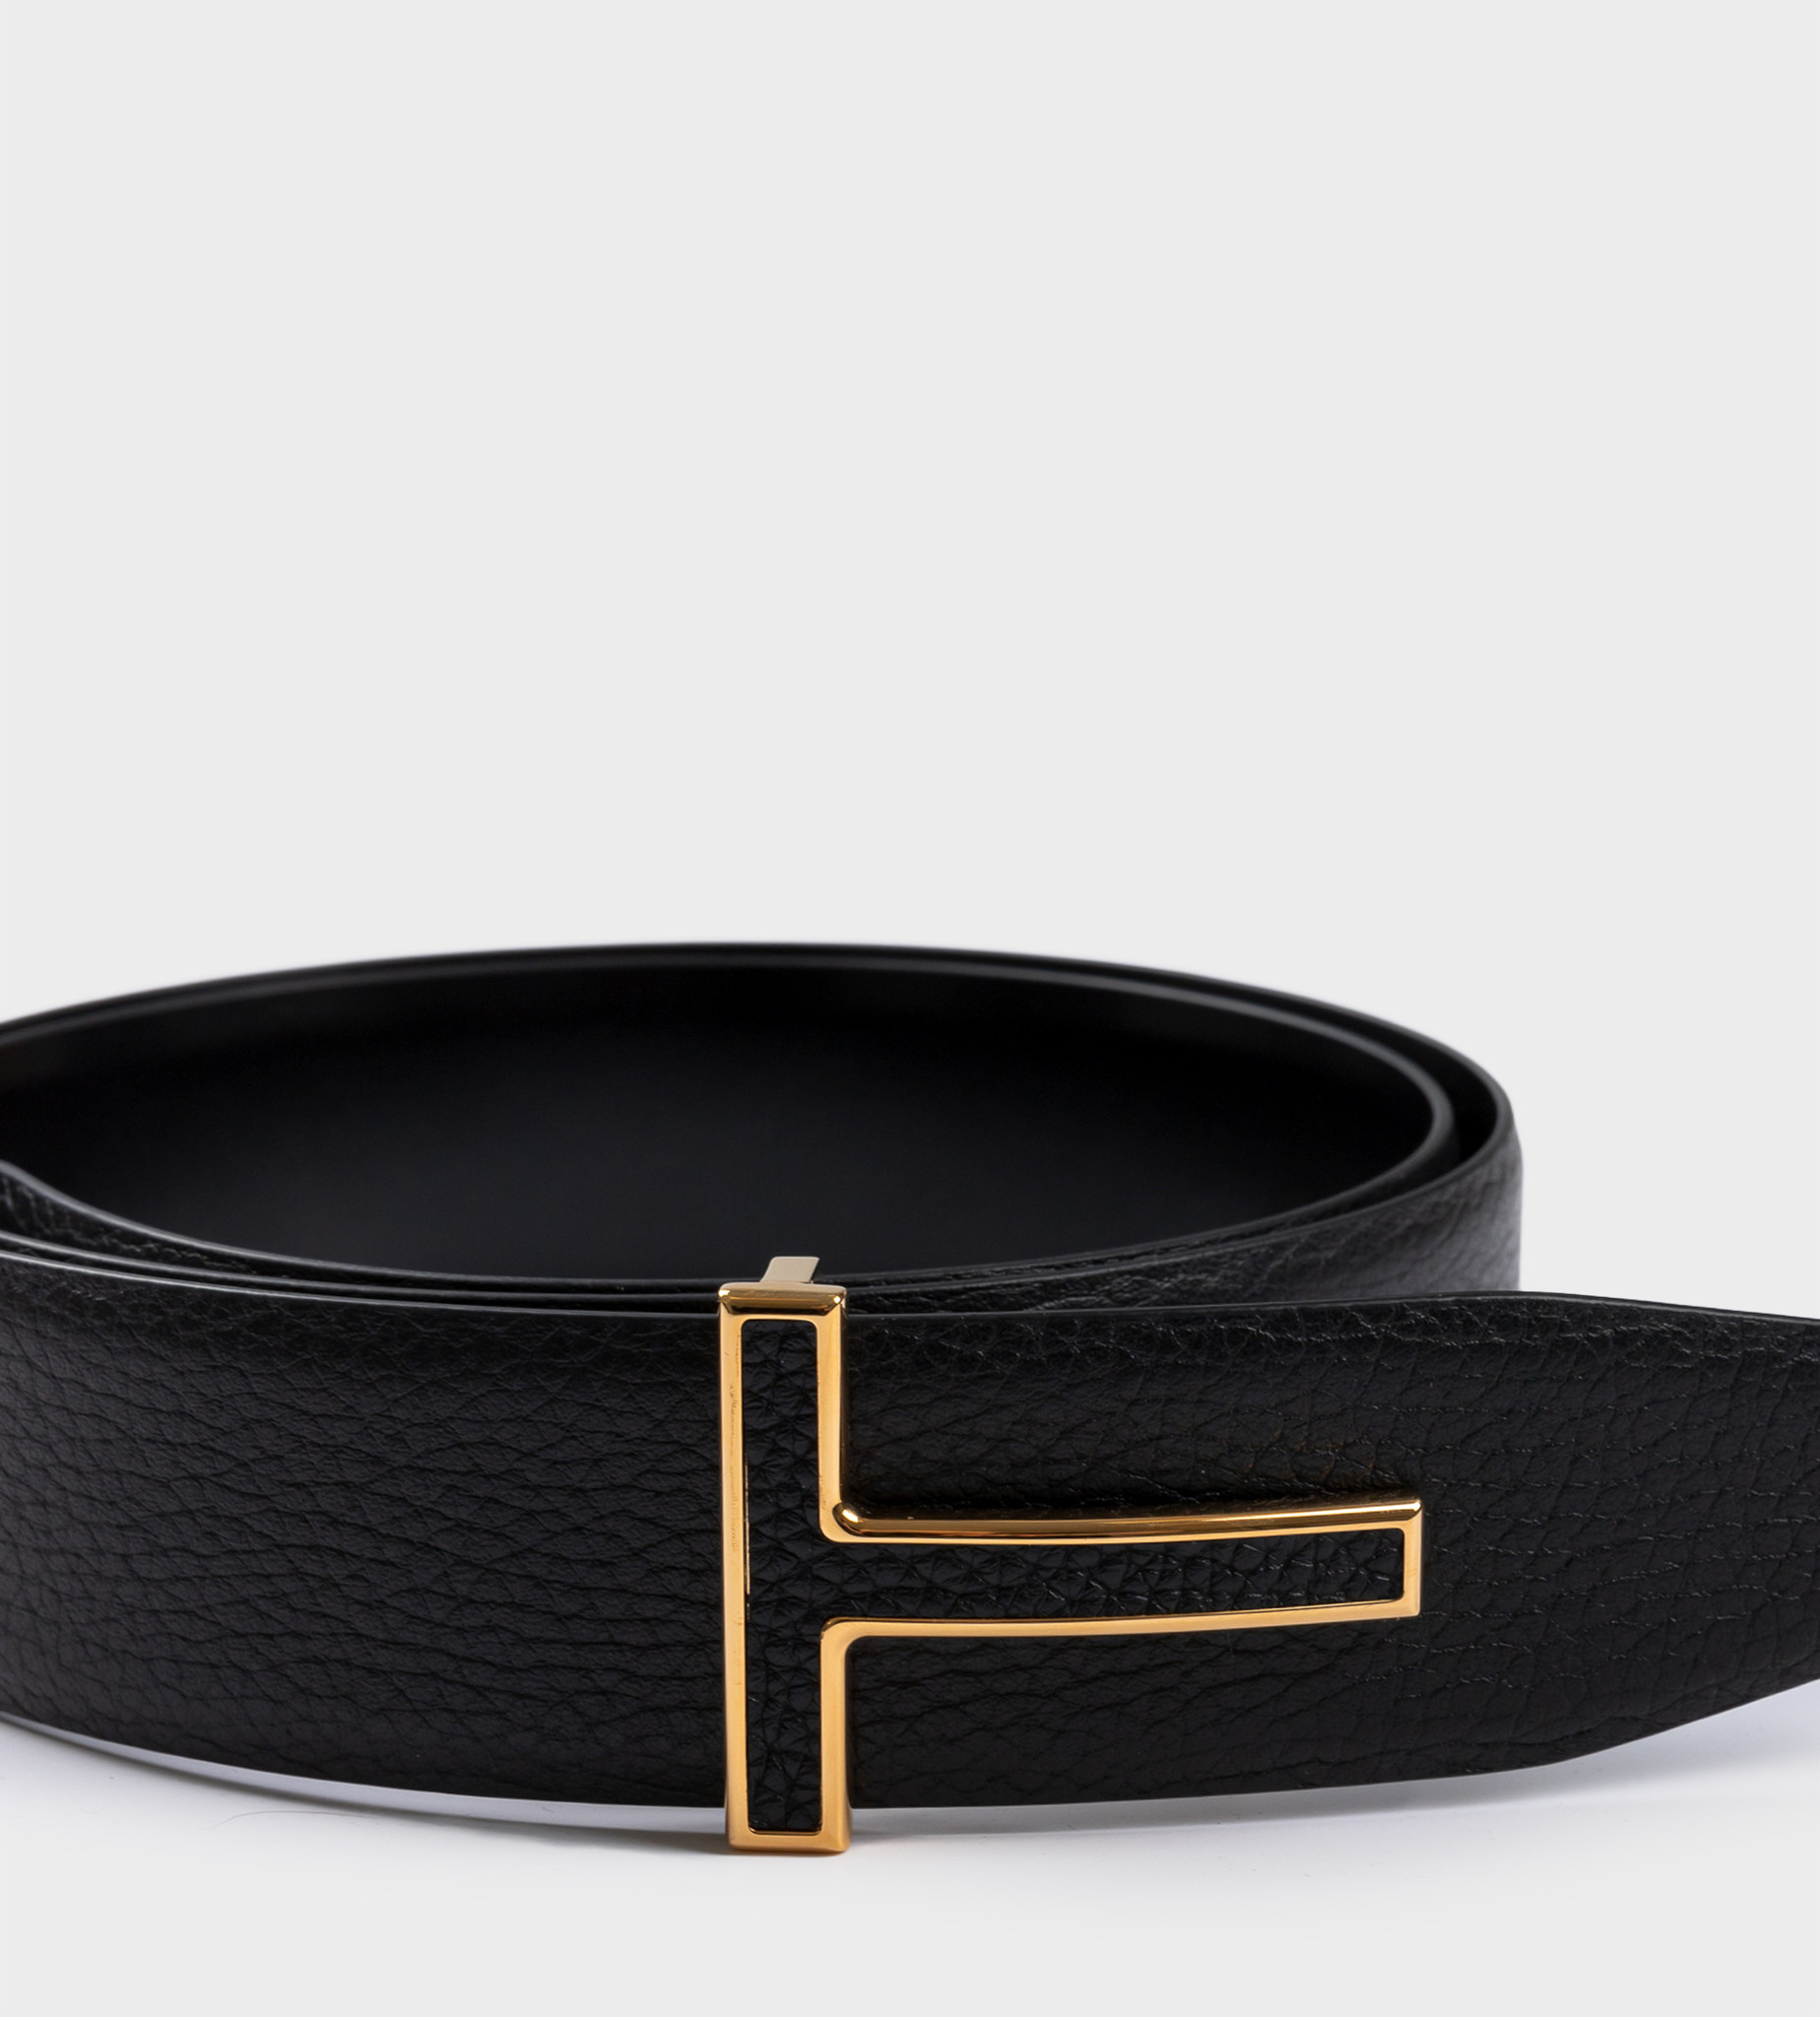 TOM FORD Reversible T Buckle Leather Belt Gold